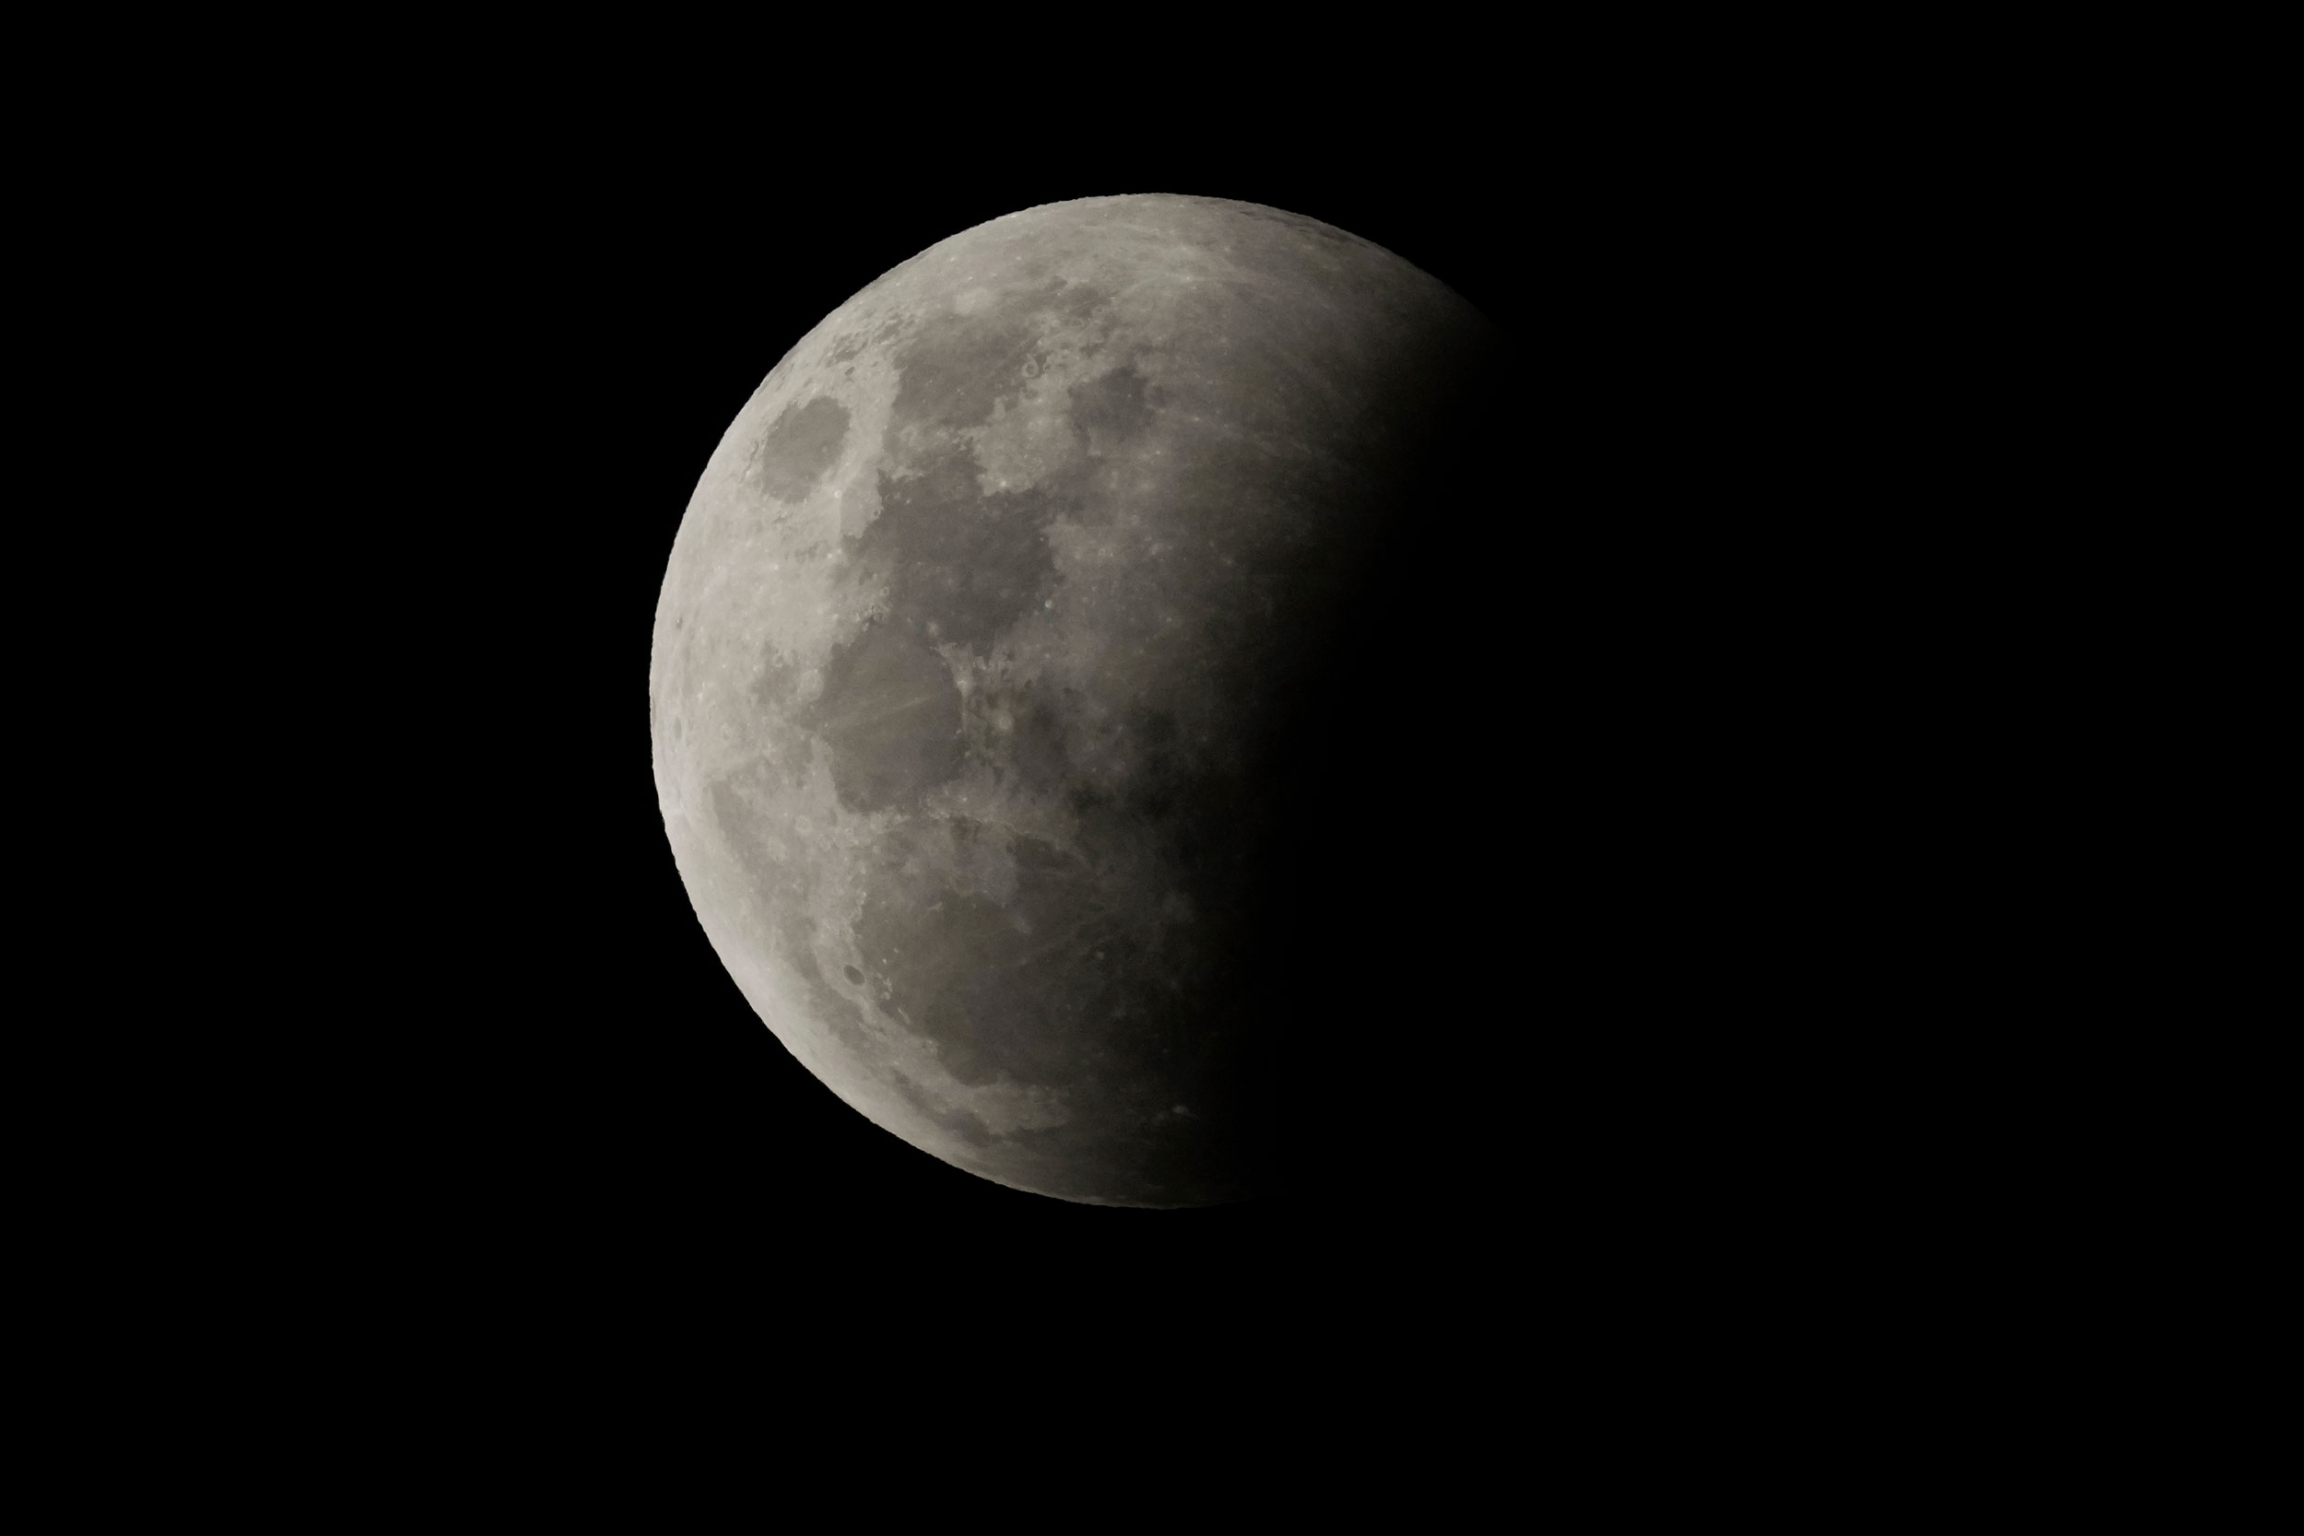 The beginning of a total lunar eclipse with a shadow on about 25% of the moon.